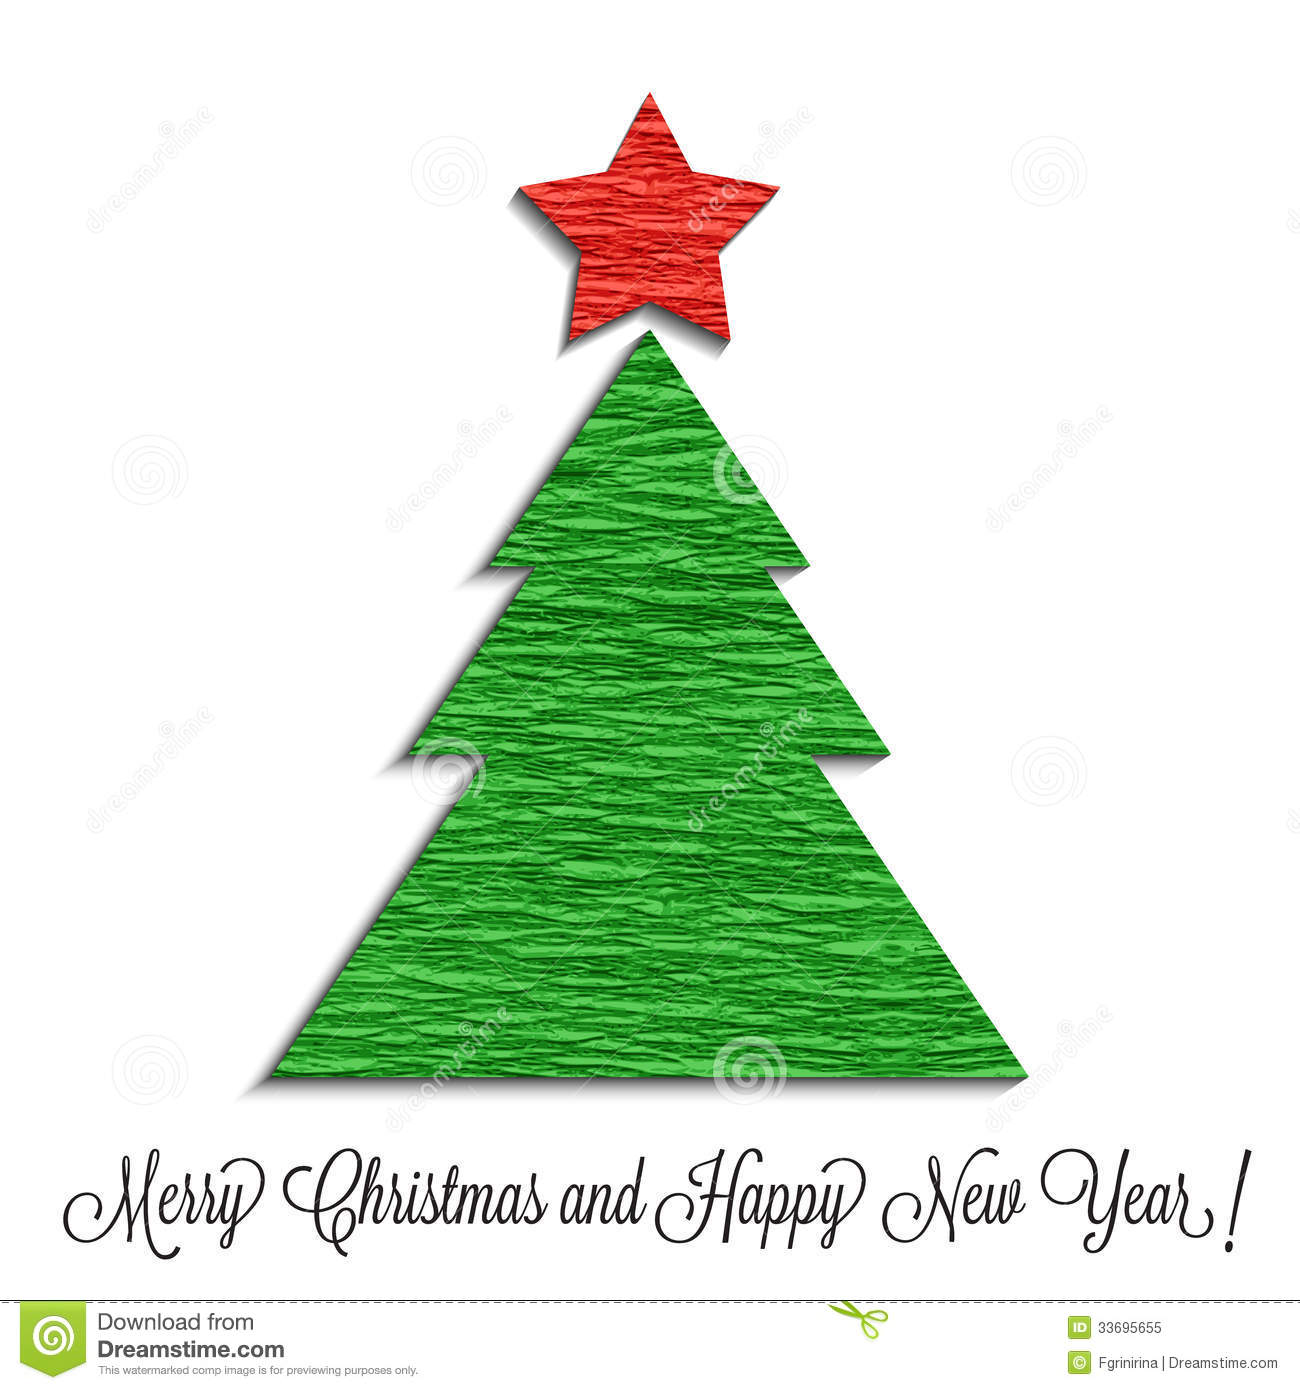 Christmas Tree Made Out Of Paper: Stylized Christmas Tree Made Of Crepe Paper Stock Vector